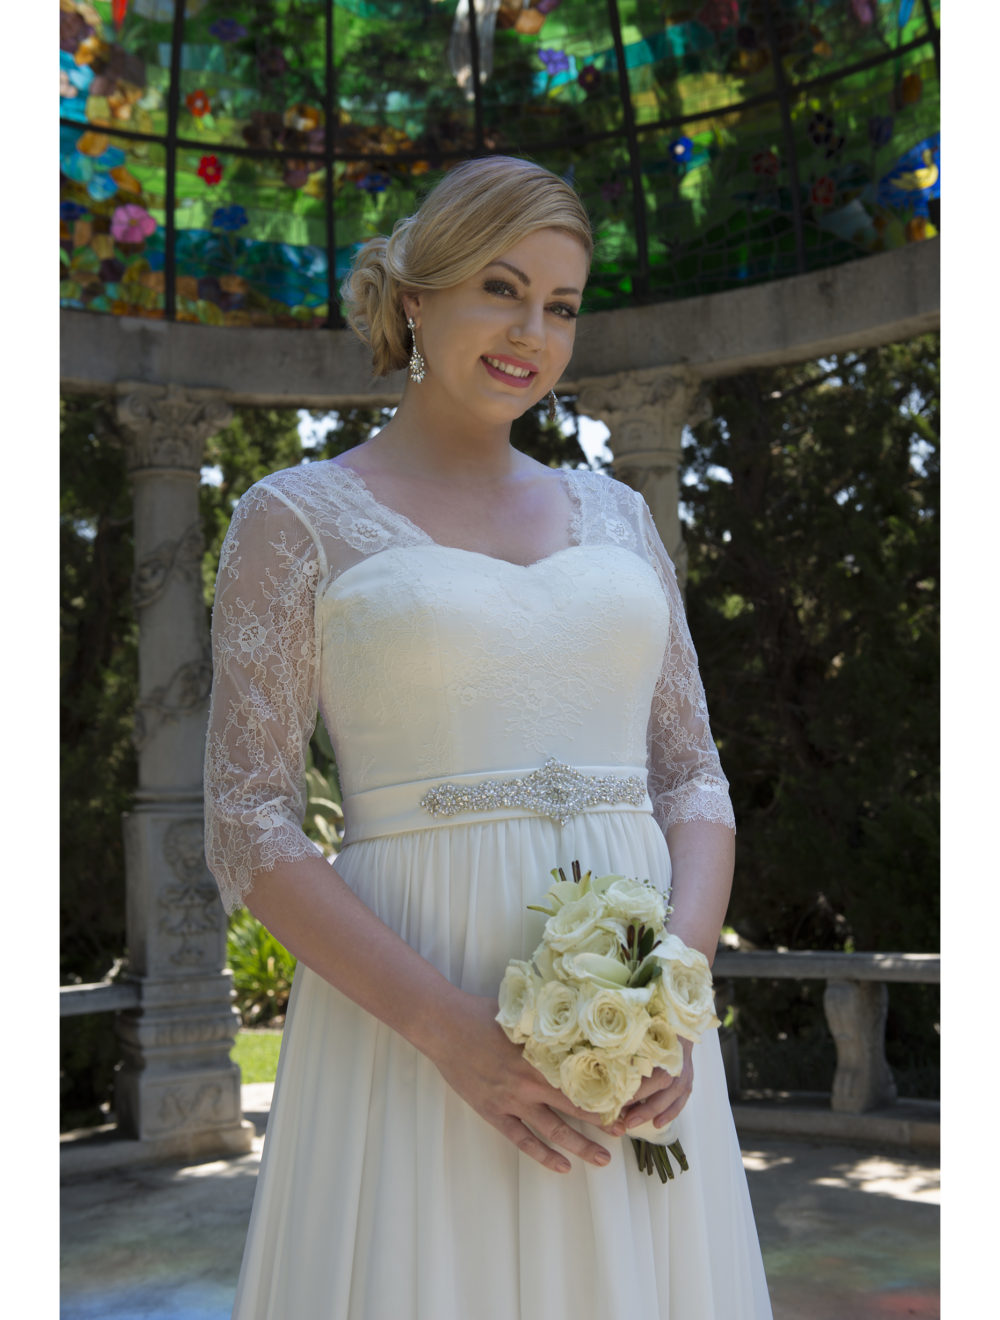 Informal Lace Chiffon Modest Plus Size Wedding Dresses With 3 4 Sleeves  2017 Big Size Reception Bridal Gowns Country Western-in Wedding Dresses from  ... b5b57f1e9505